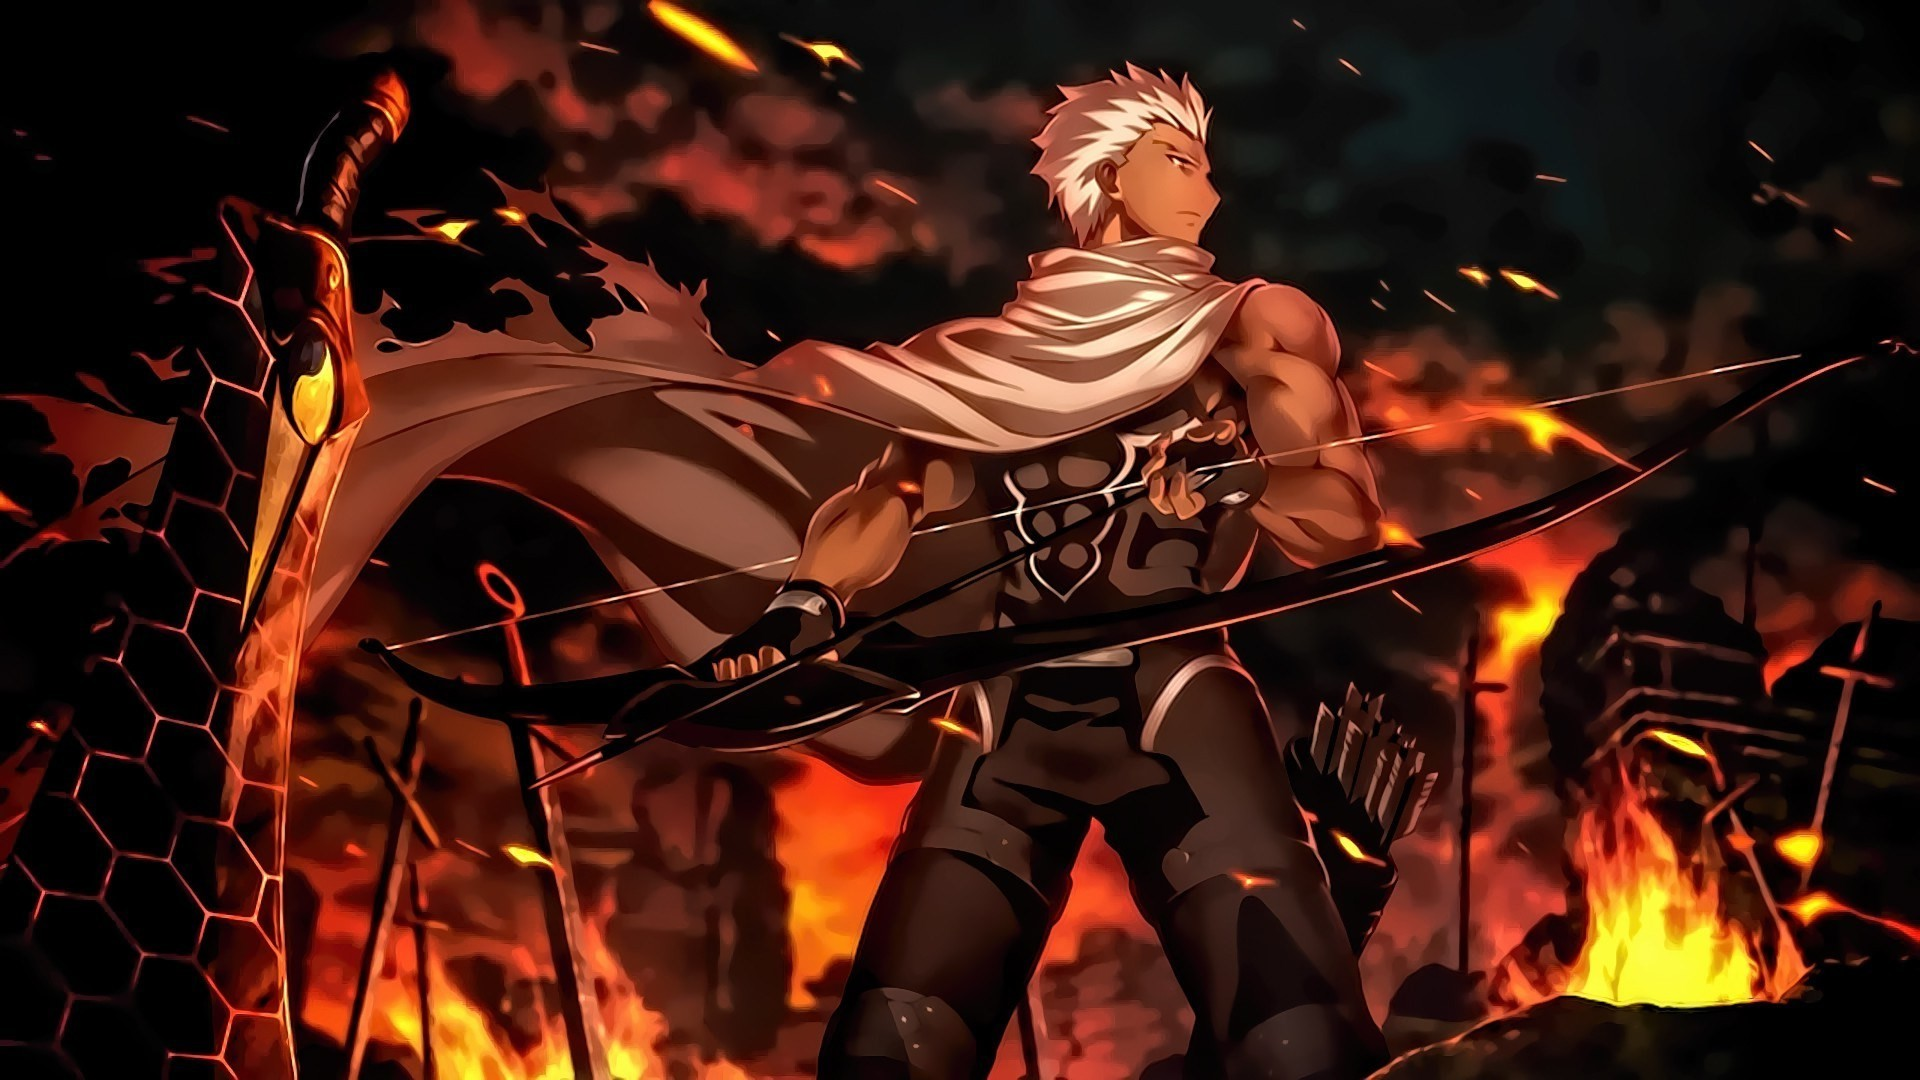 1920x1080 archer unlimited blade works wallpaper ...